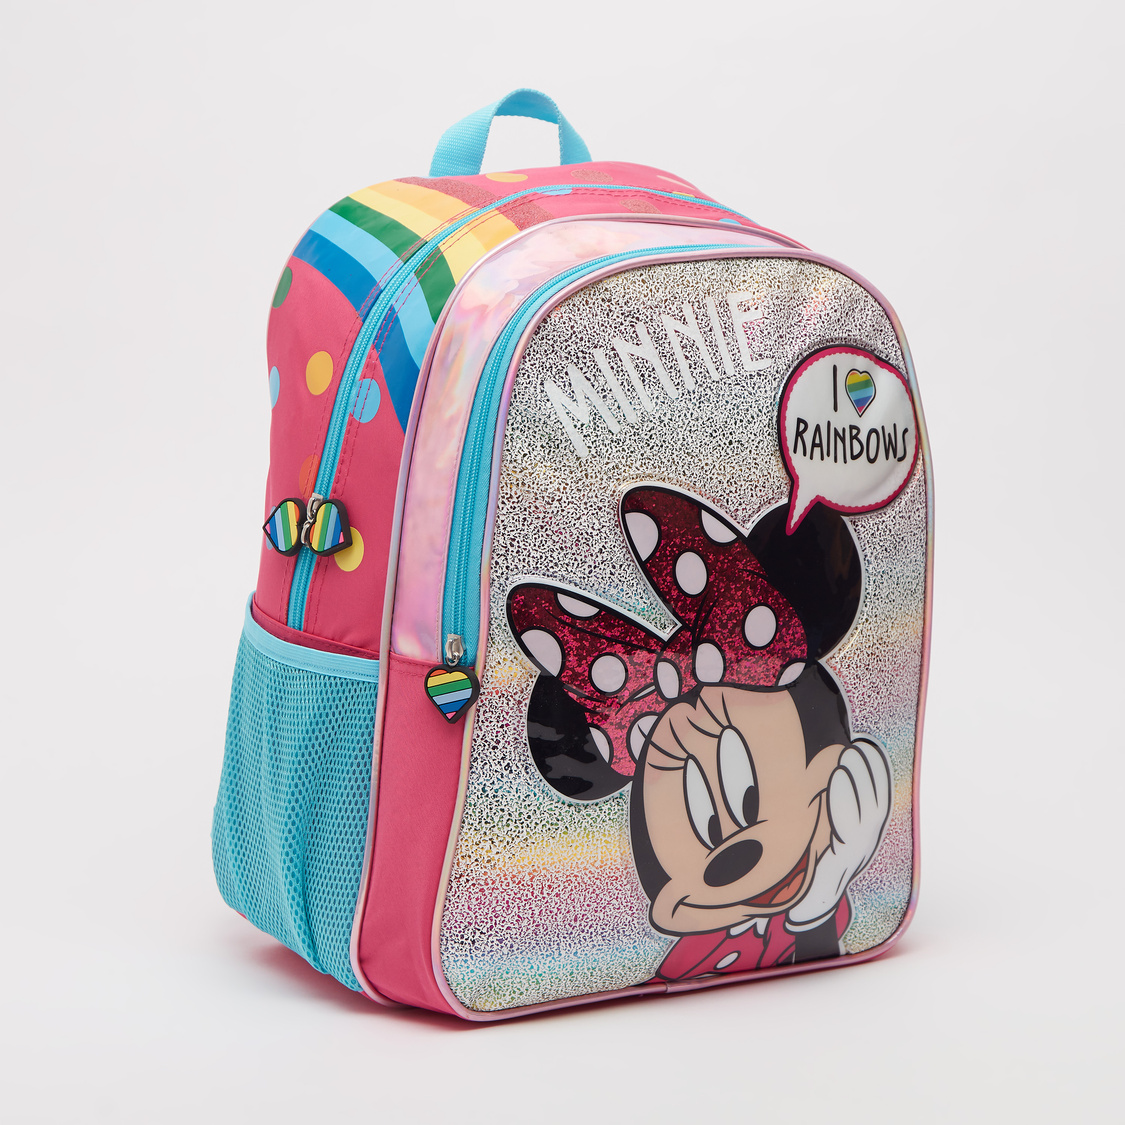 Minnie Mouse Print Backpack with Adjustable Straps